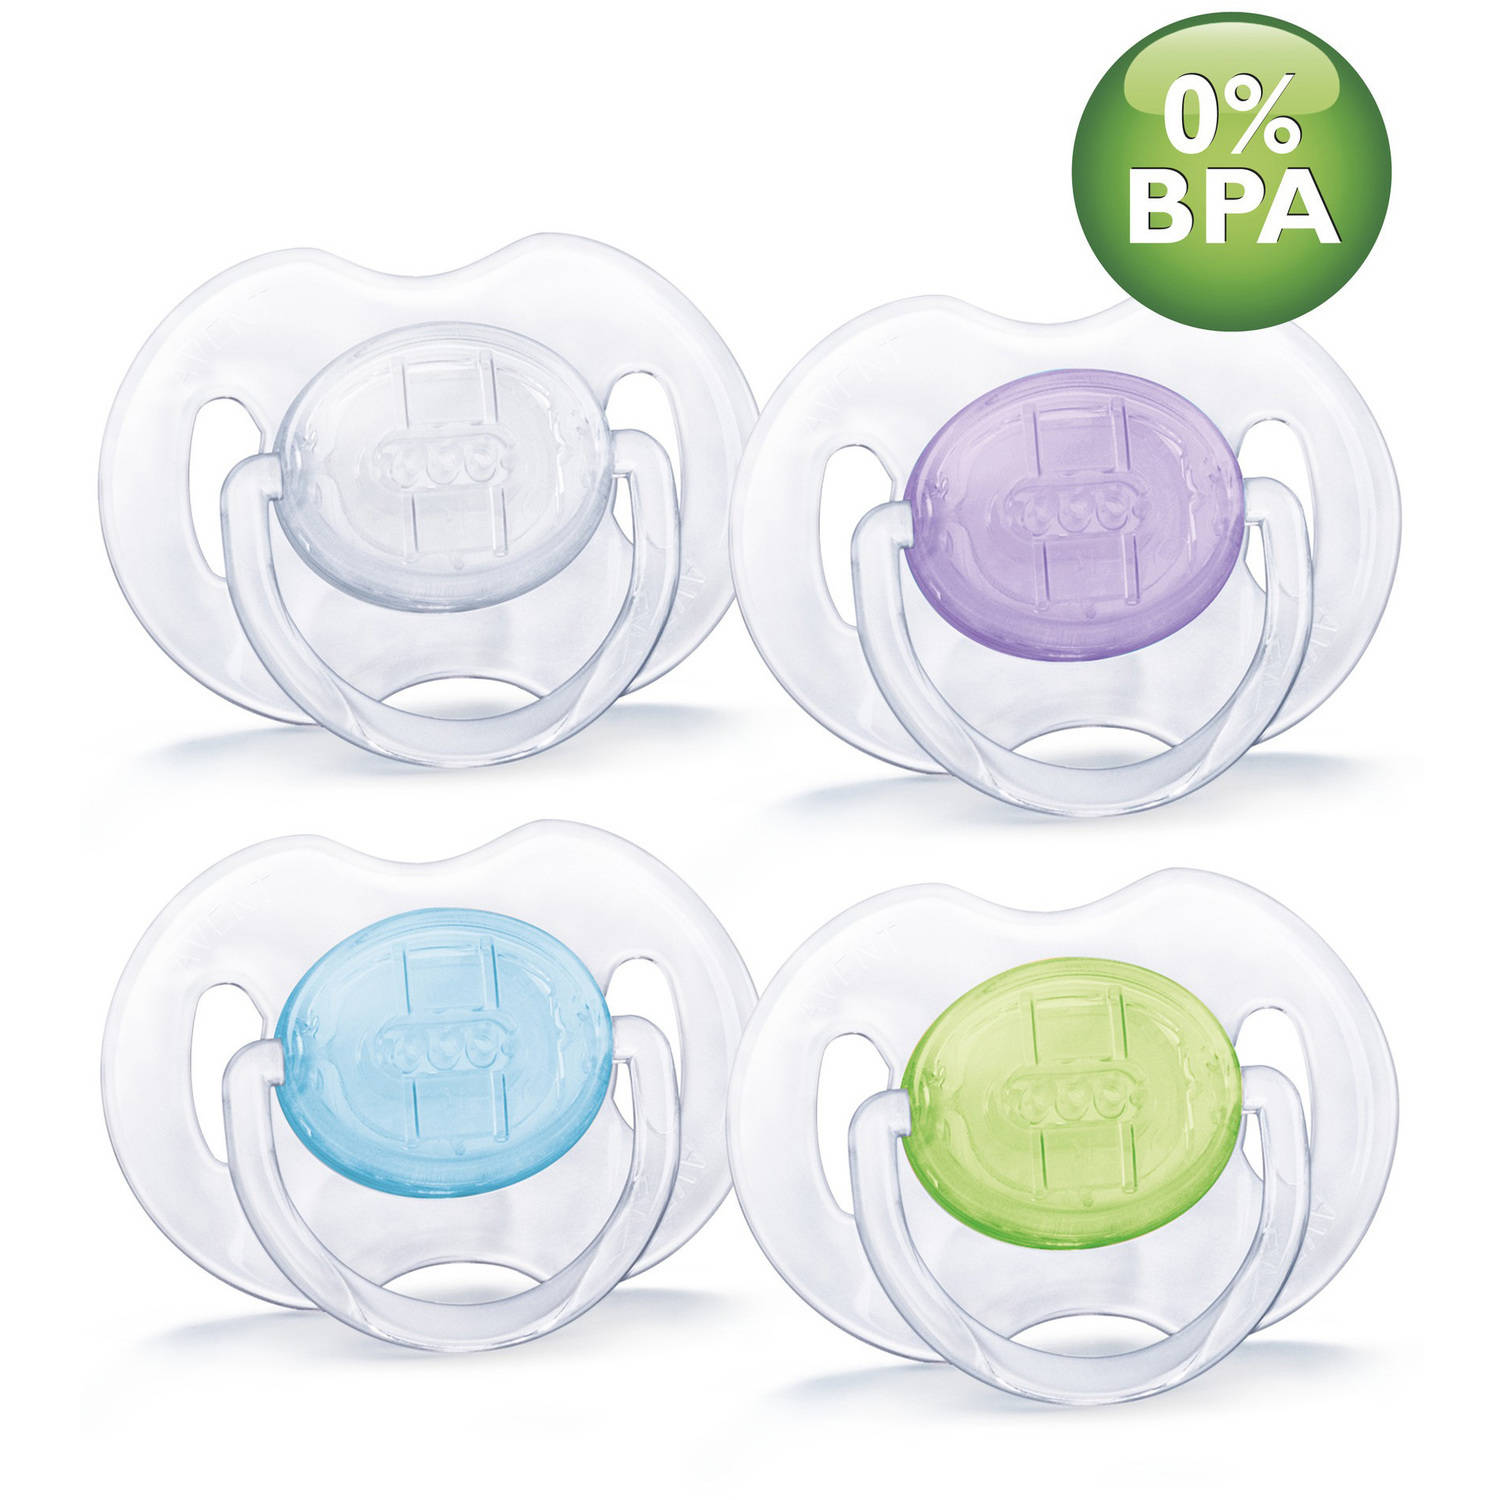 Philips Avent Classic Translucent Pacifiers, SCF170/18, 2 count